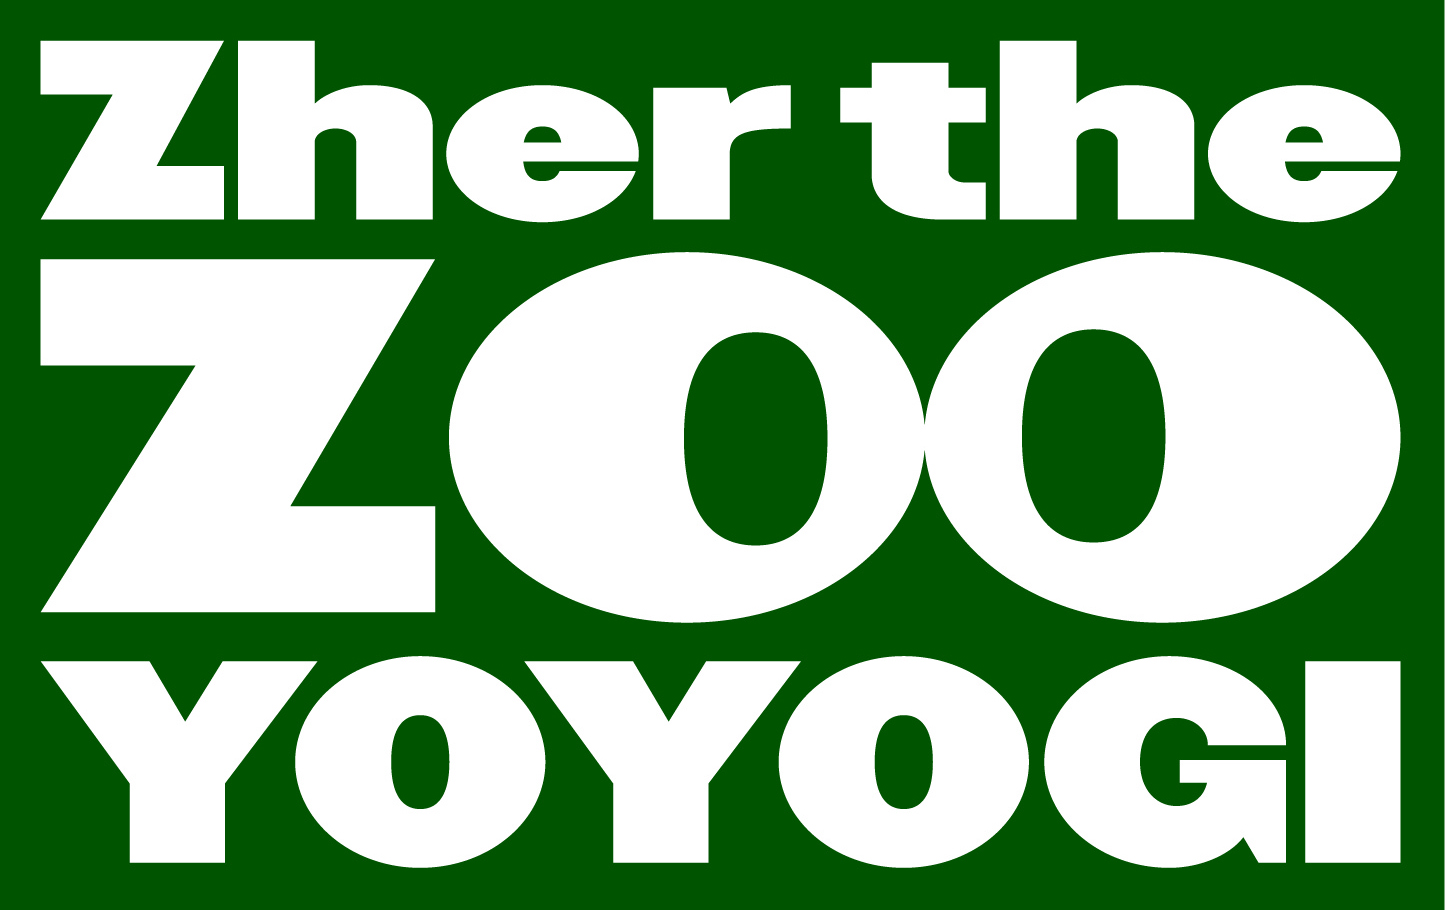 """Zher the Zoo count down 2017-2018"""